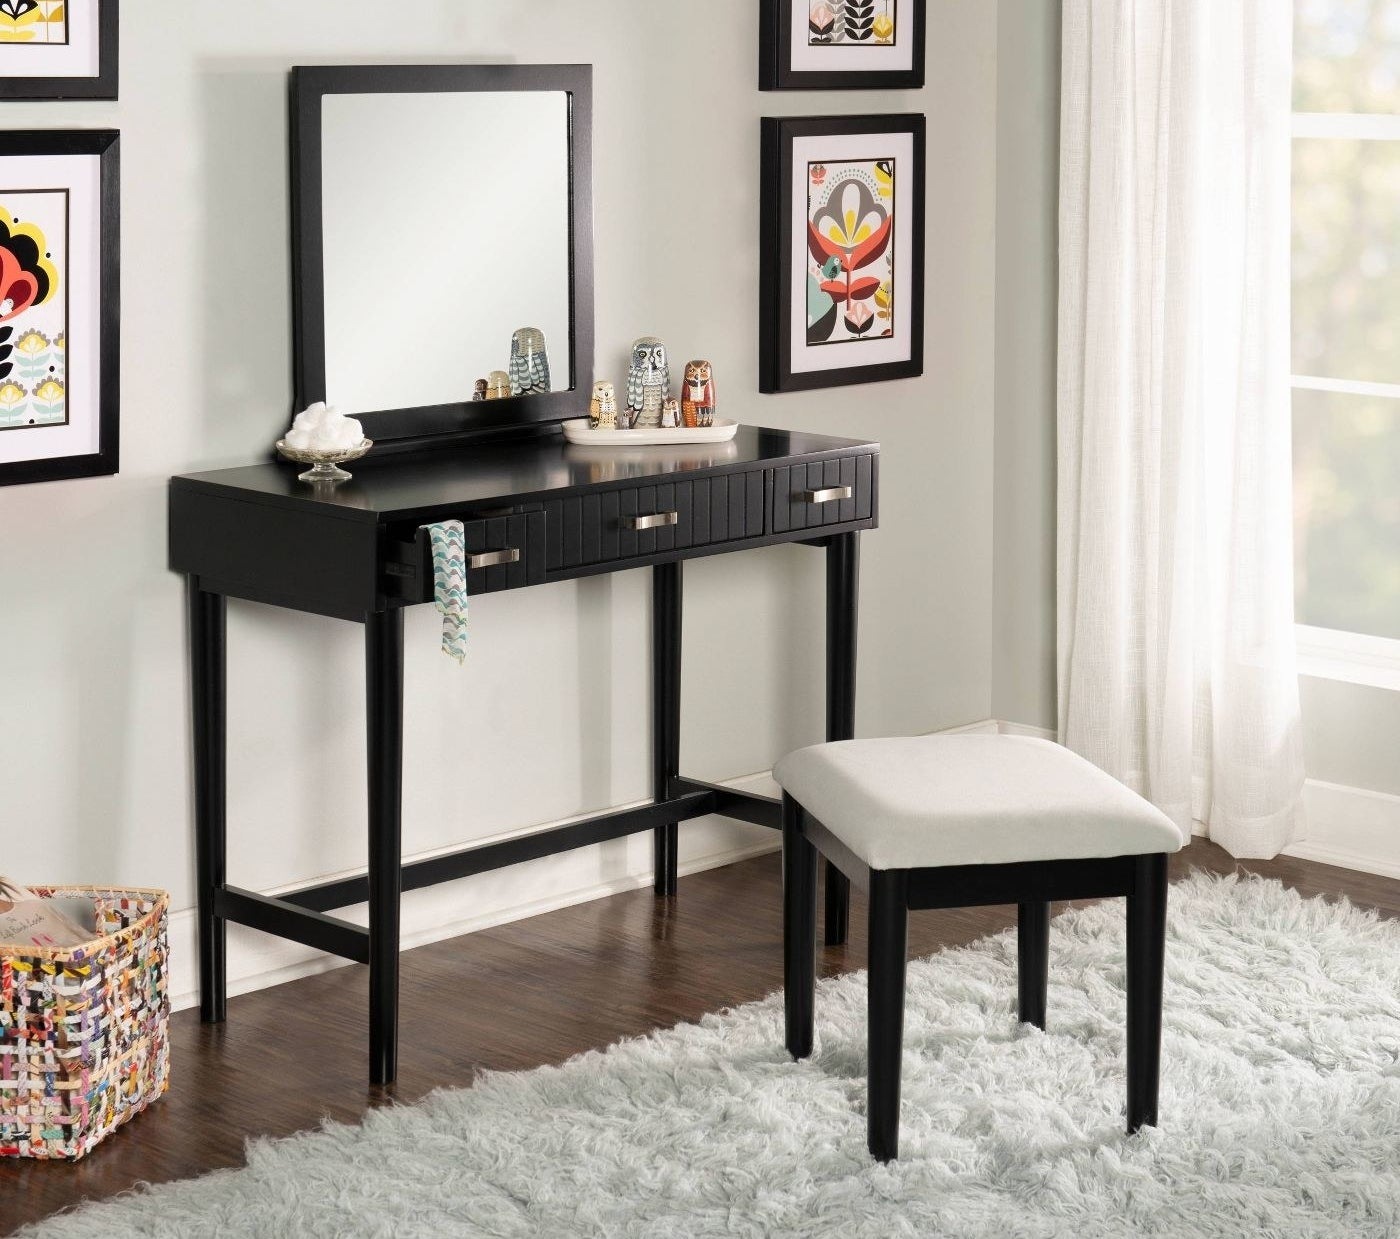 A black vanity with a square mirror and stool